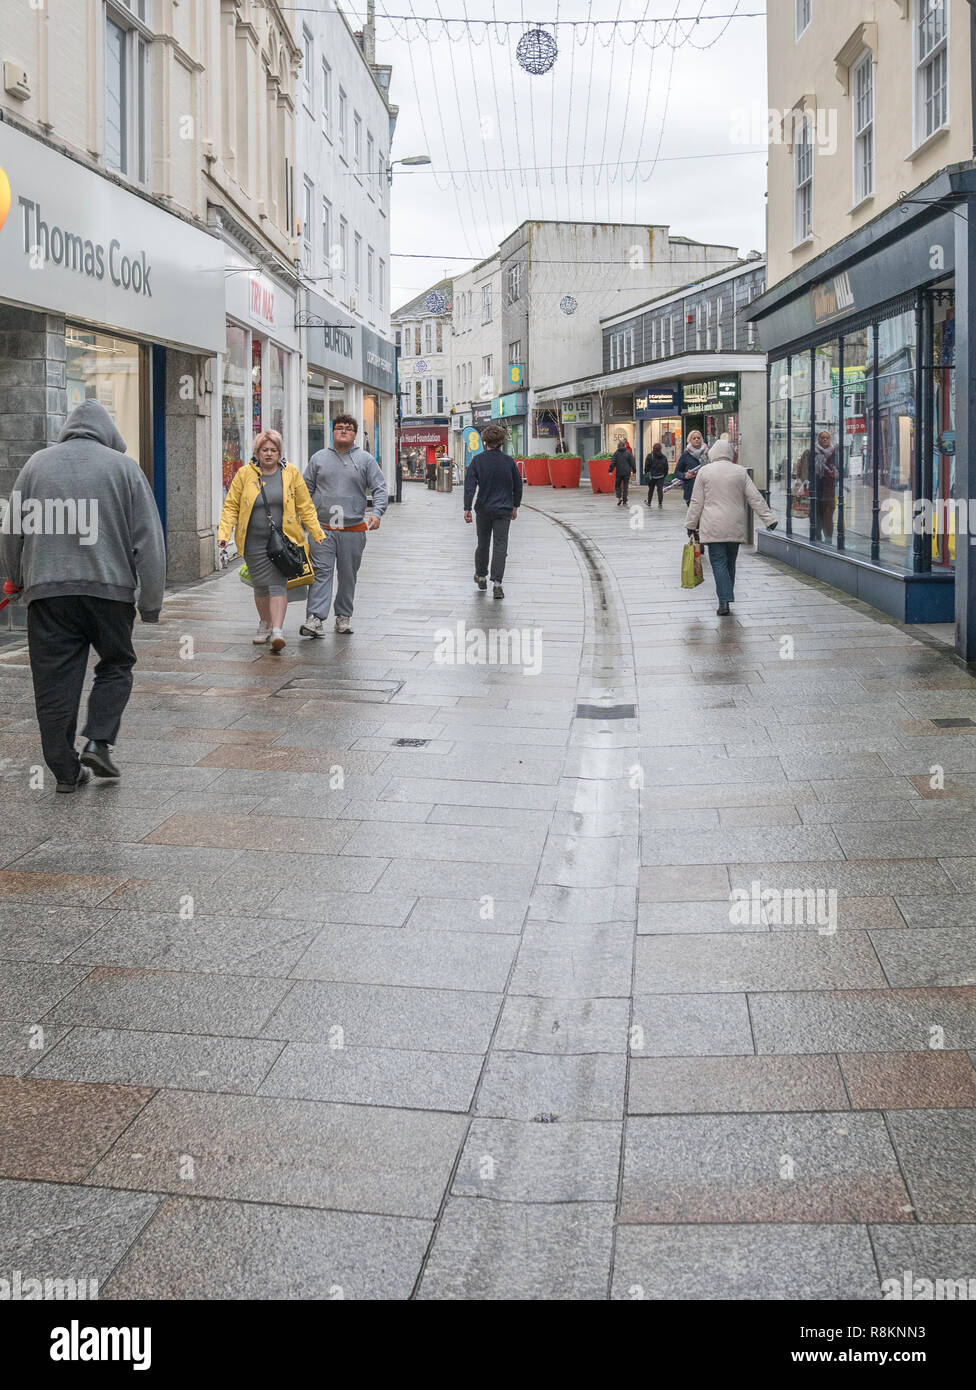 Almost deserted Fore Street in St. Austell - a retail shopping zone at Christmas 2018. Metaphor for death of the high street, poor retail sales. - Stock Image